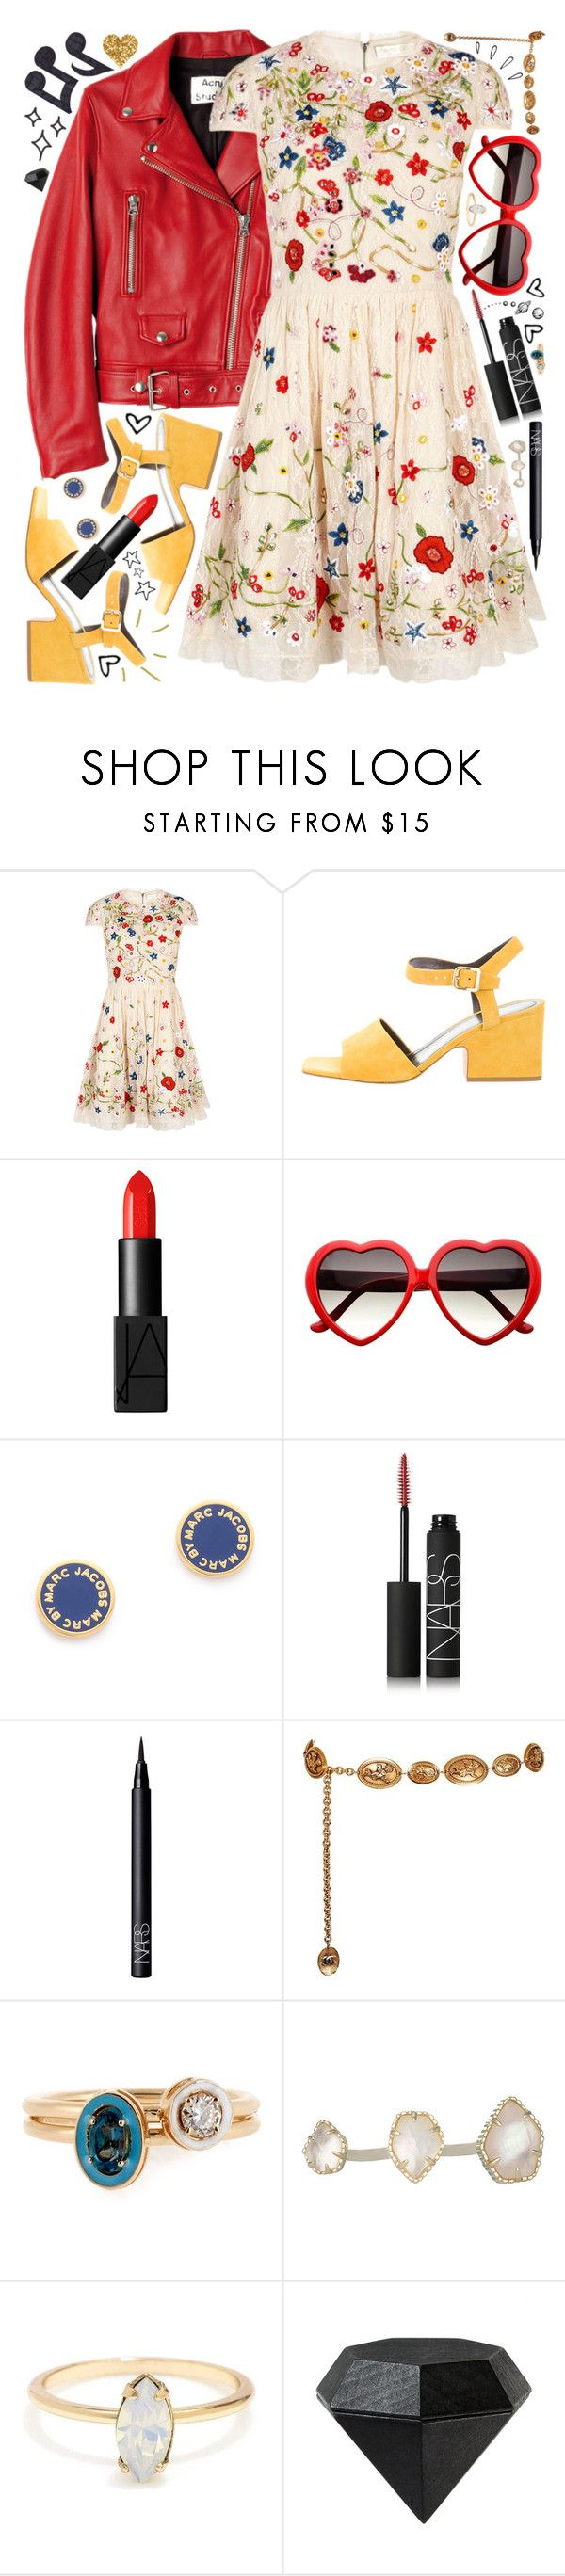 """""""{with my feelings on fire}"""" by kk-purpleprincess ❤ liked on Polyvore featuring Alice + Olivia, CÉLINE, NARS Cosmetics, Marc by Marc Jacobs, Chanel, Old Navy, Alison Lou, Kendra Scott, Music Notes and Areaware"""